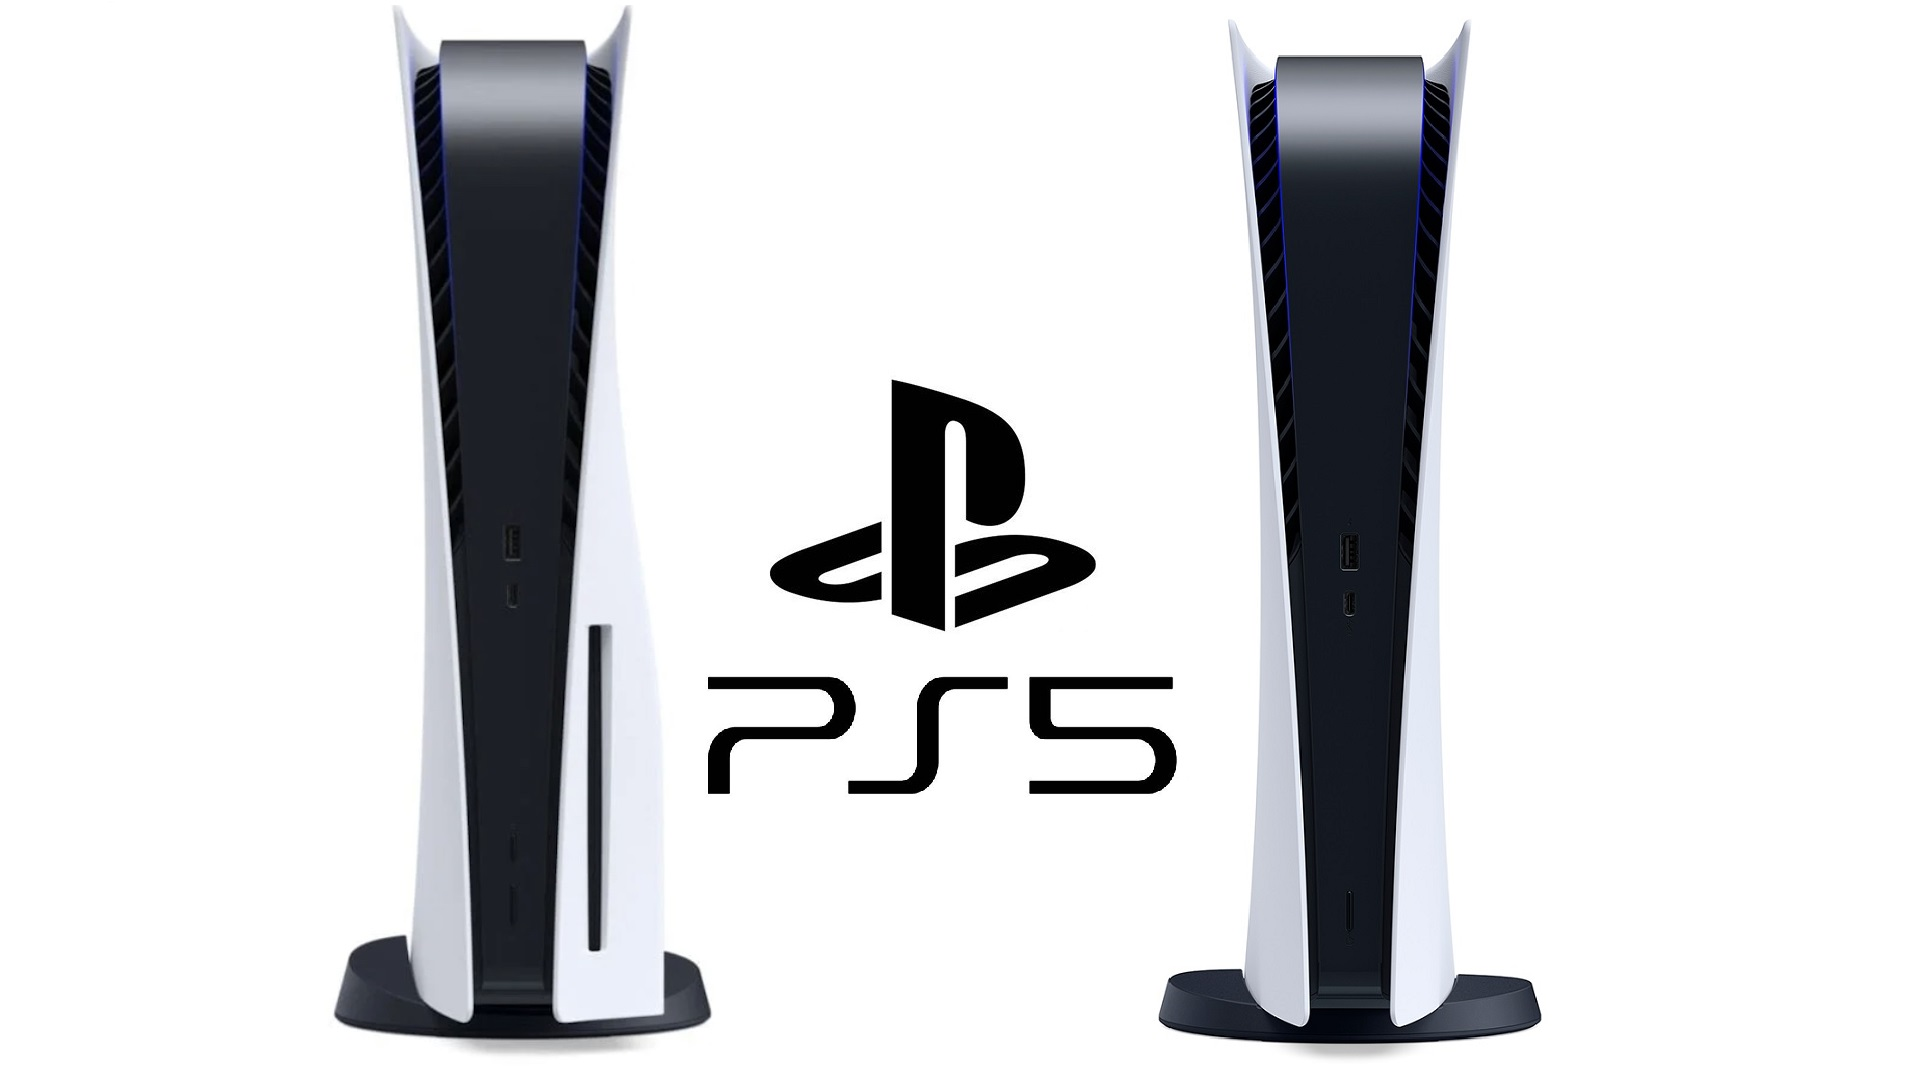 PS5 Seemingly Will Not See More Stock In Major UK Retailers Until 2021